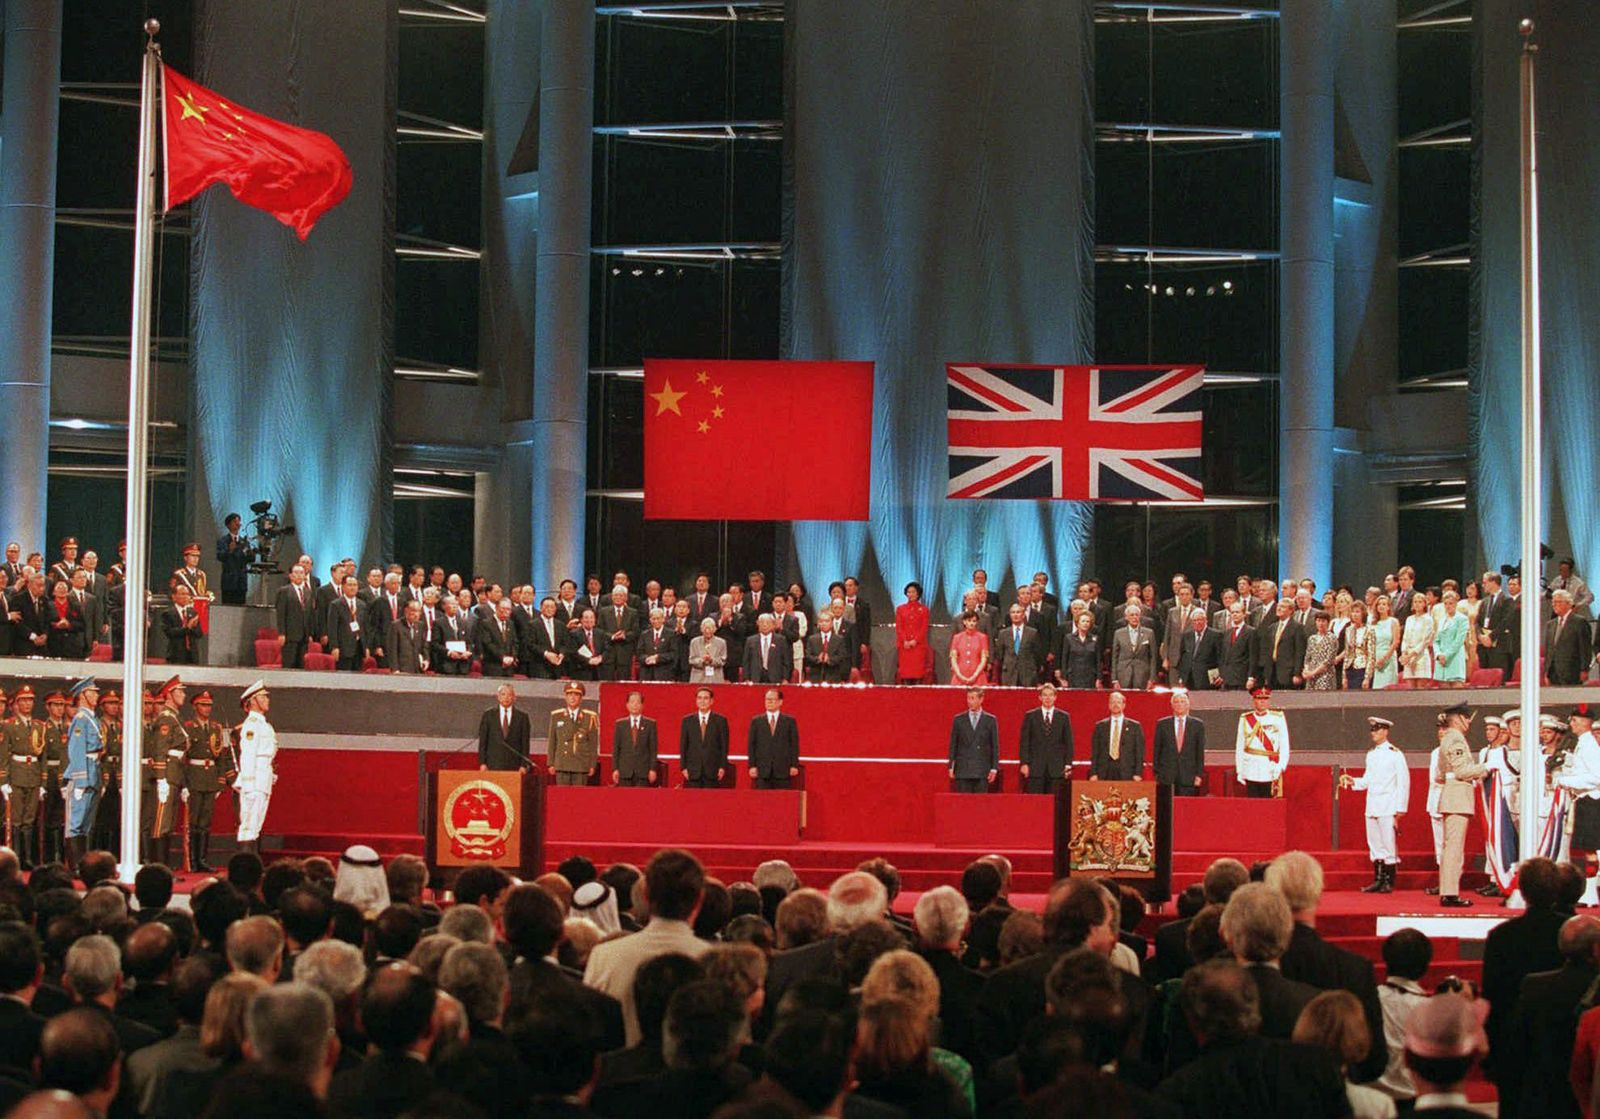 CHINESE FLAG FLIES UNION JACK LOWERED